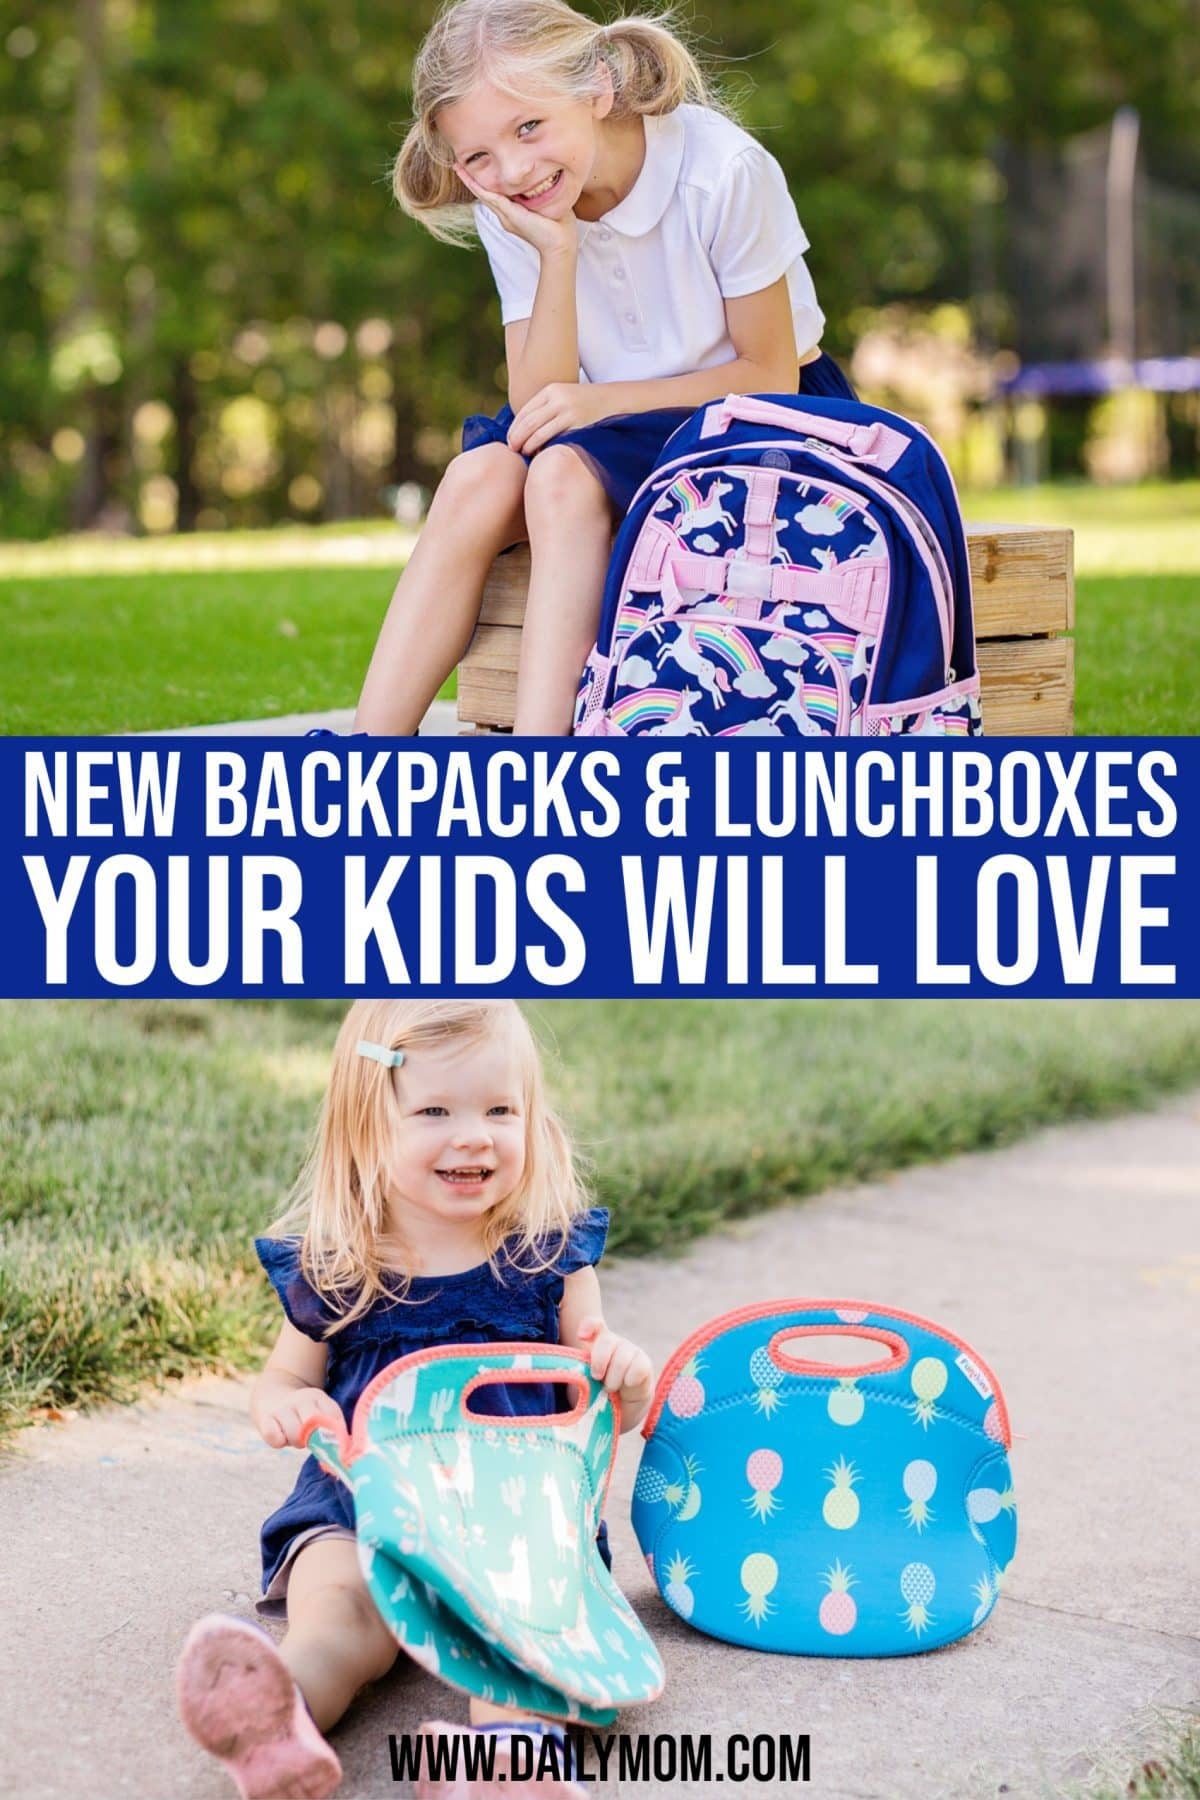 15 Backpacks And Lunchboxes You'll Love This School Year